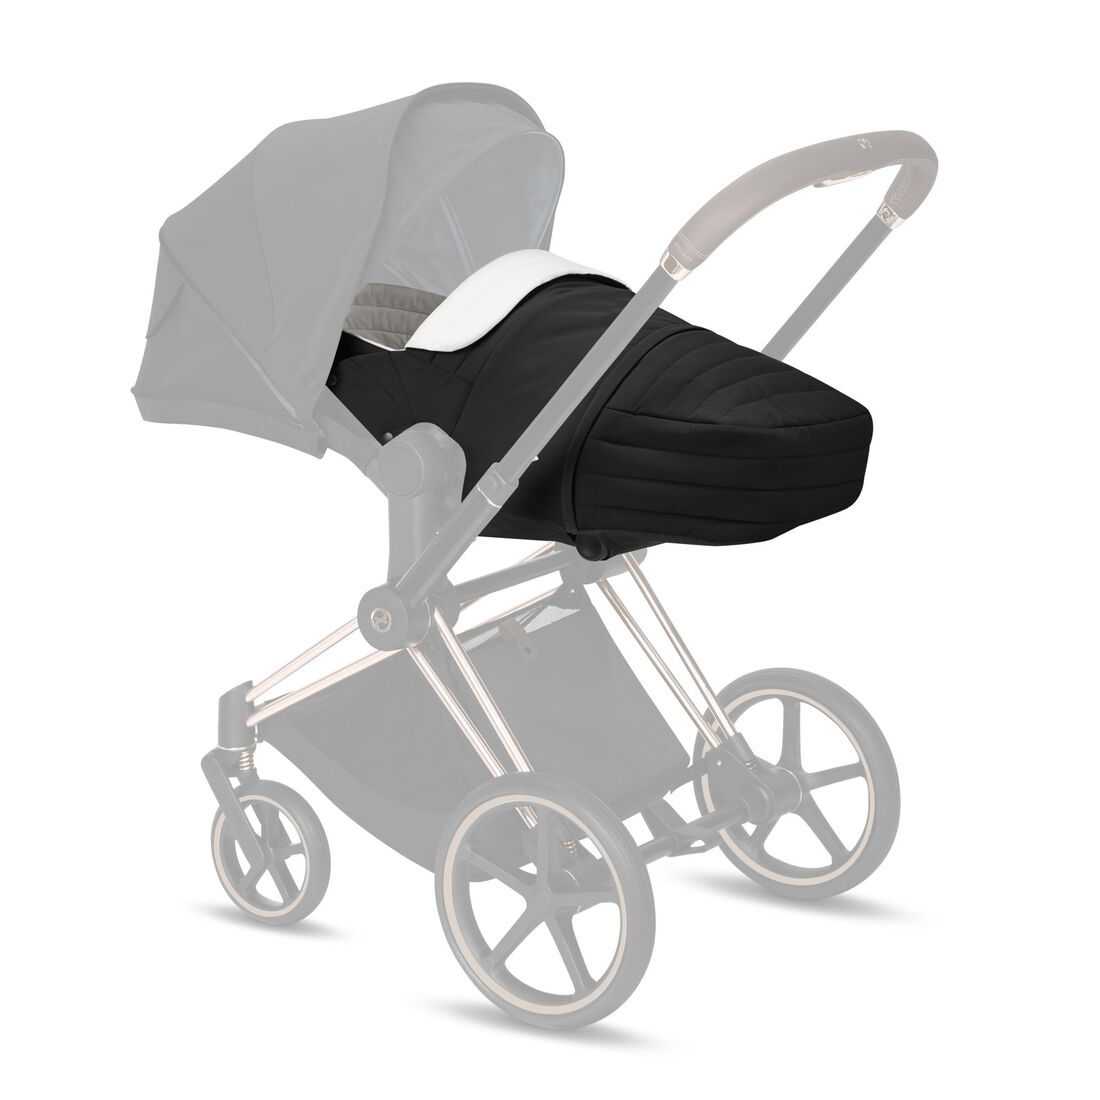 CYBEX Konfiguration e-Priam Set: Rahmen, Sitzpaket, Lite Cot in  large Bild 4